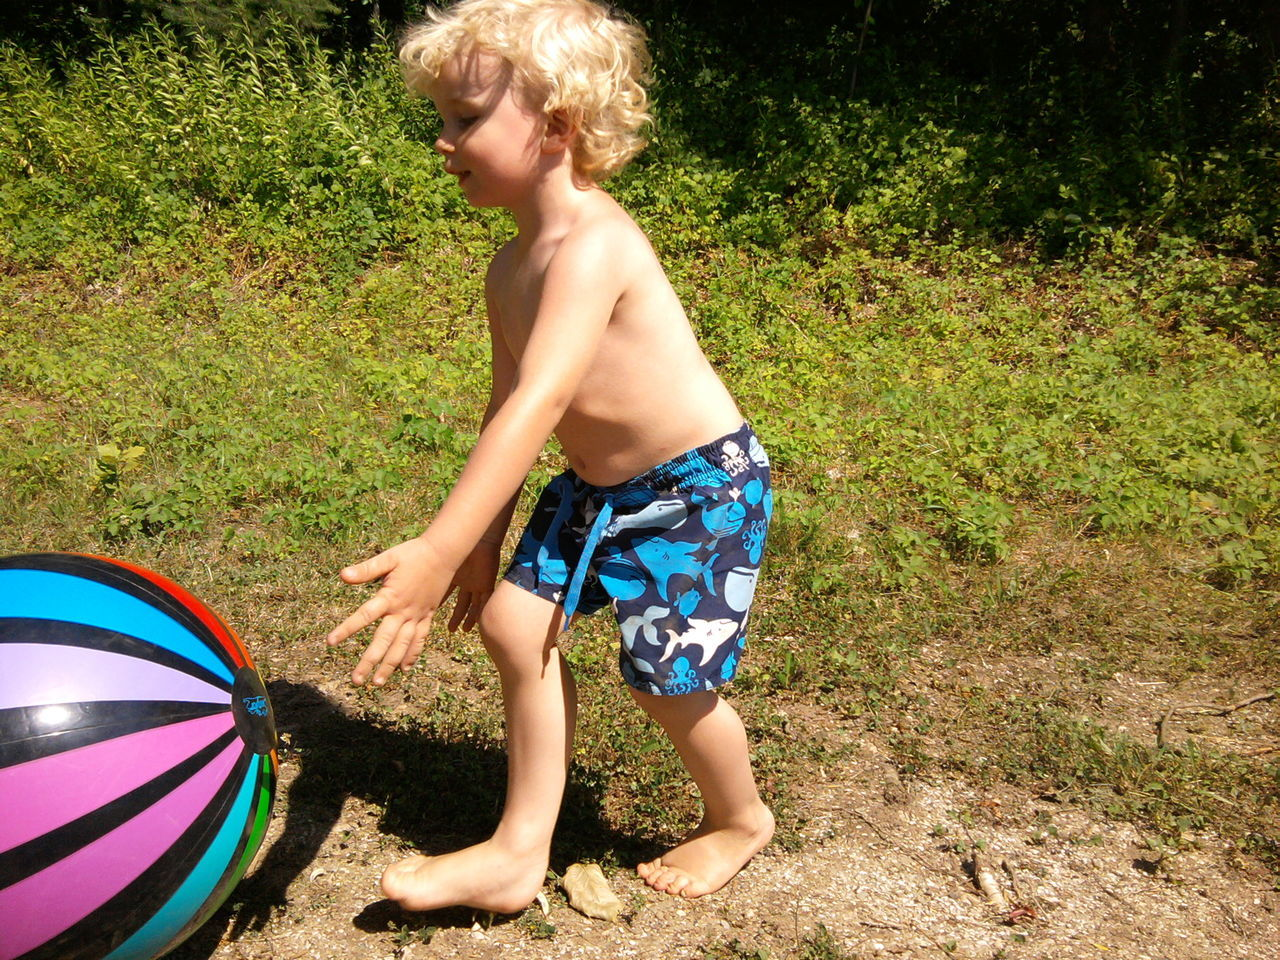 Shirtless Boy Playing With Ball On Field